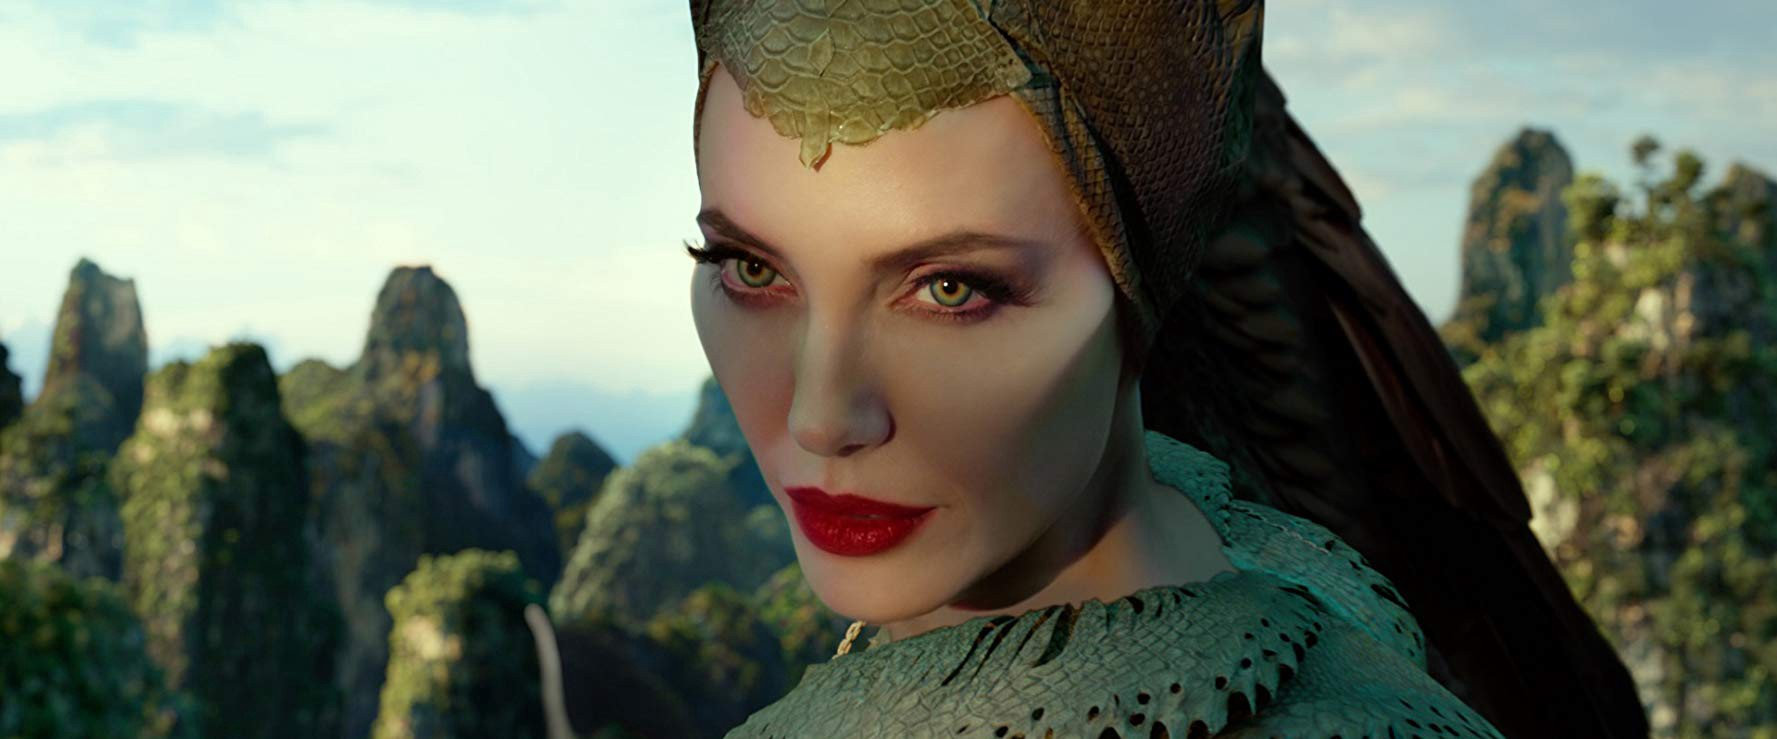 28+ Maleficent 2 1080P Download  Pictures